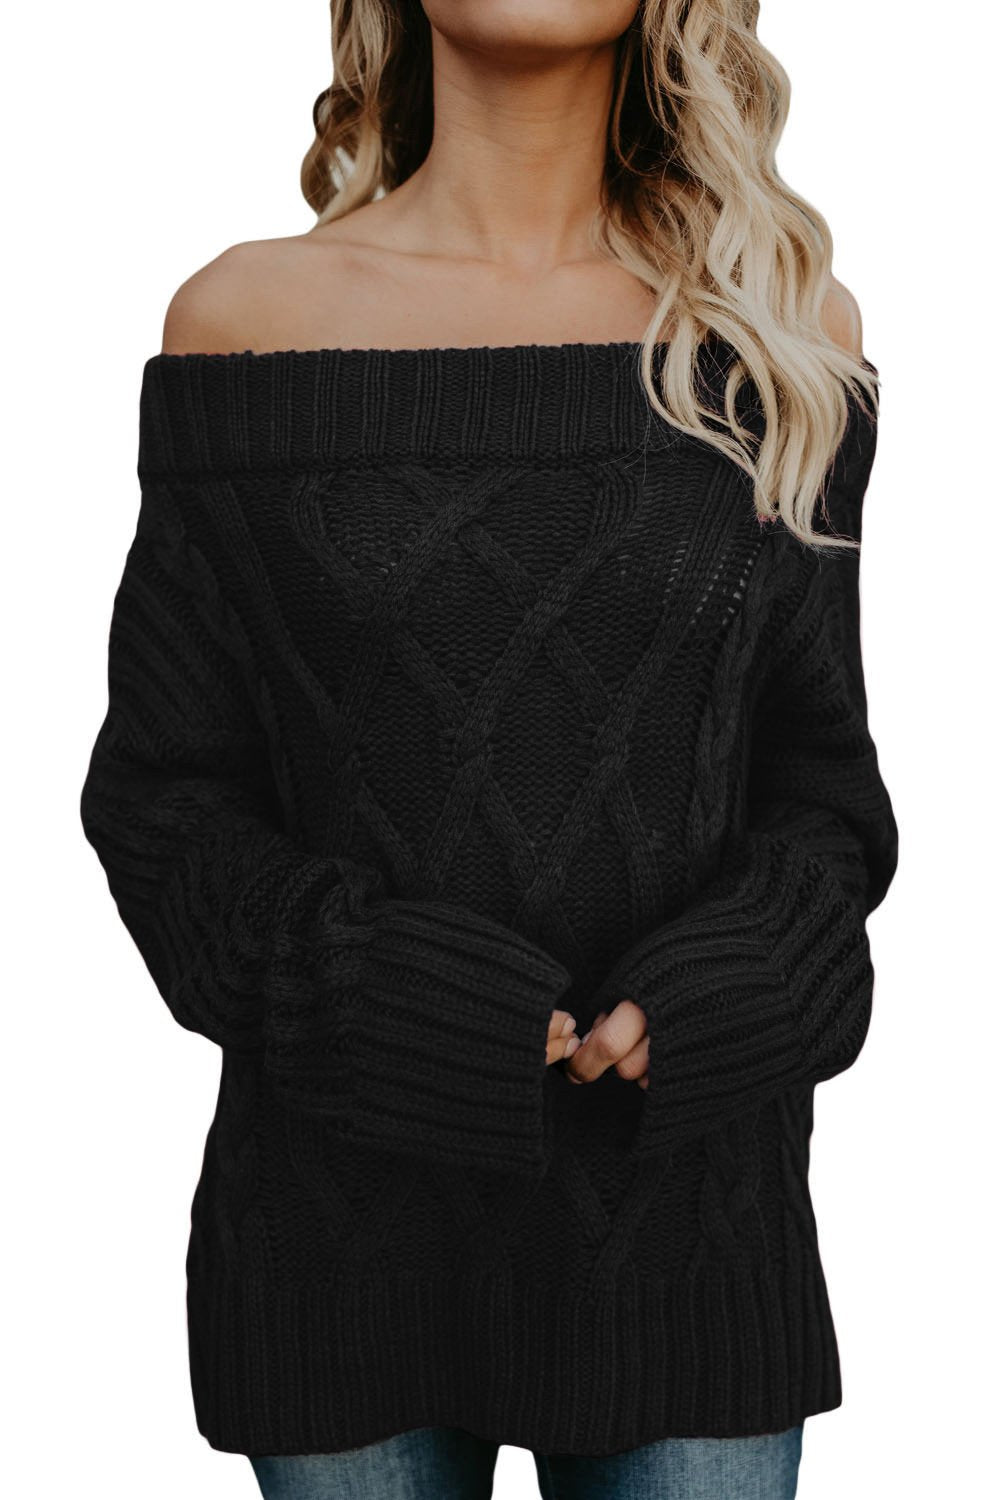 Fashion Black Off The Shoulder Winter Sweater - Winter Haven Co